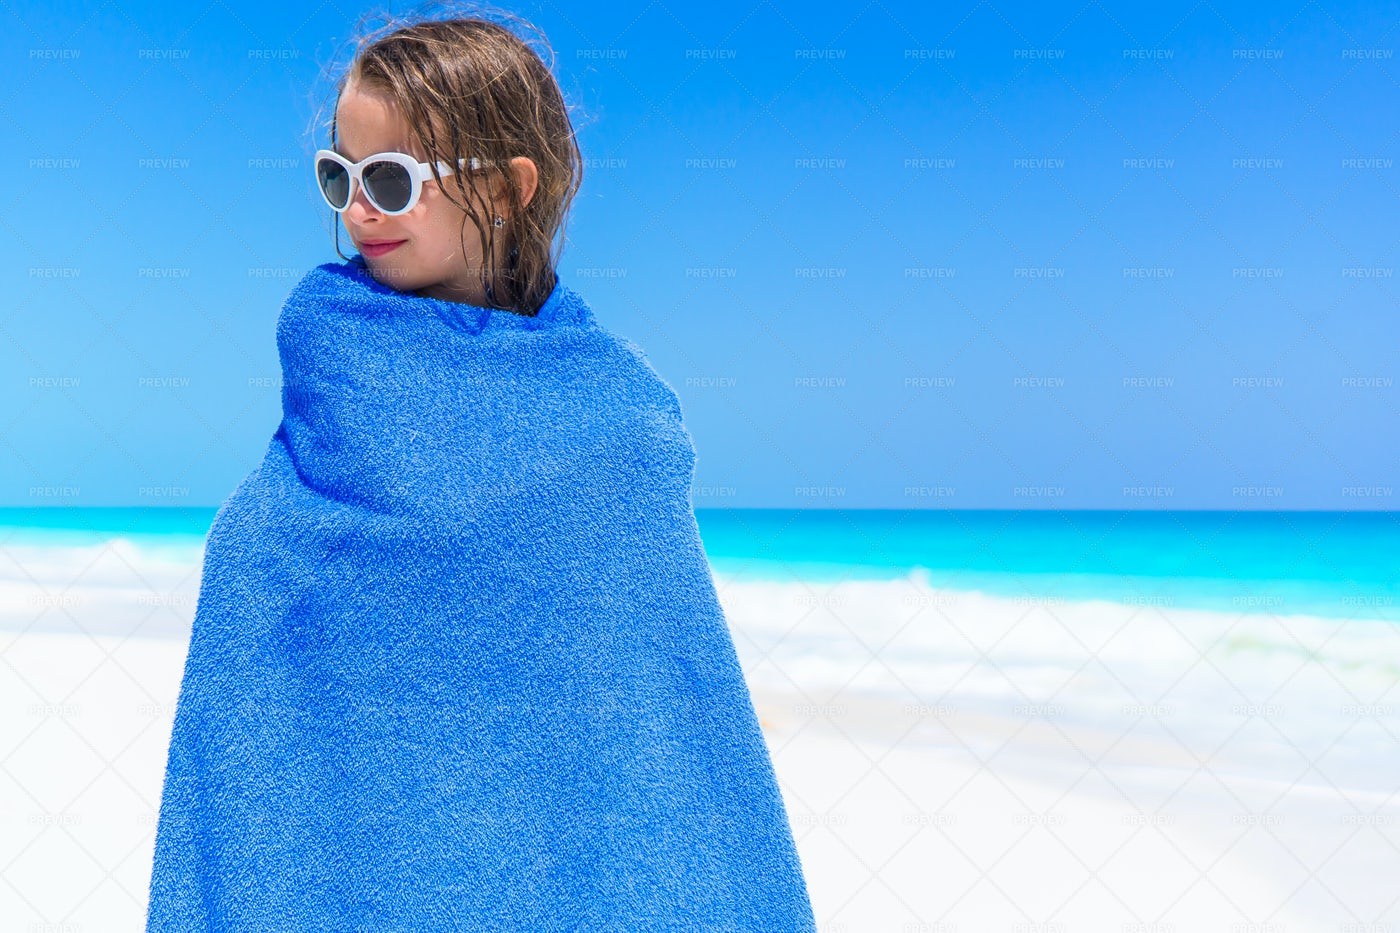 Child Wrapped Up In Towel: Stock Photos